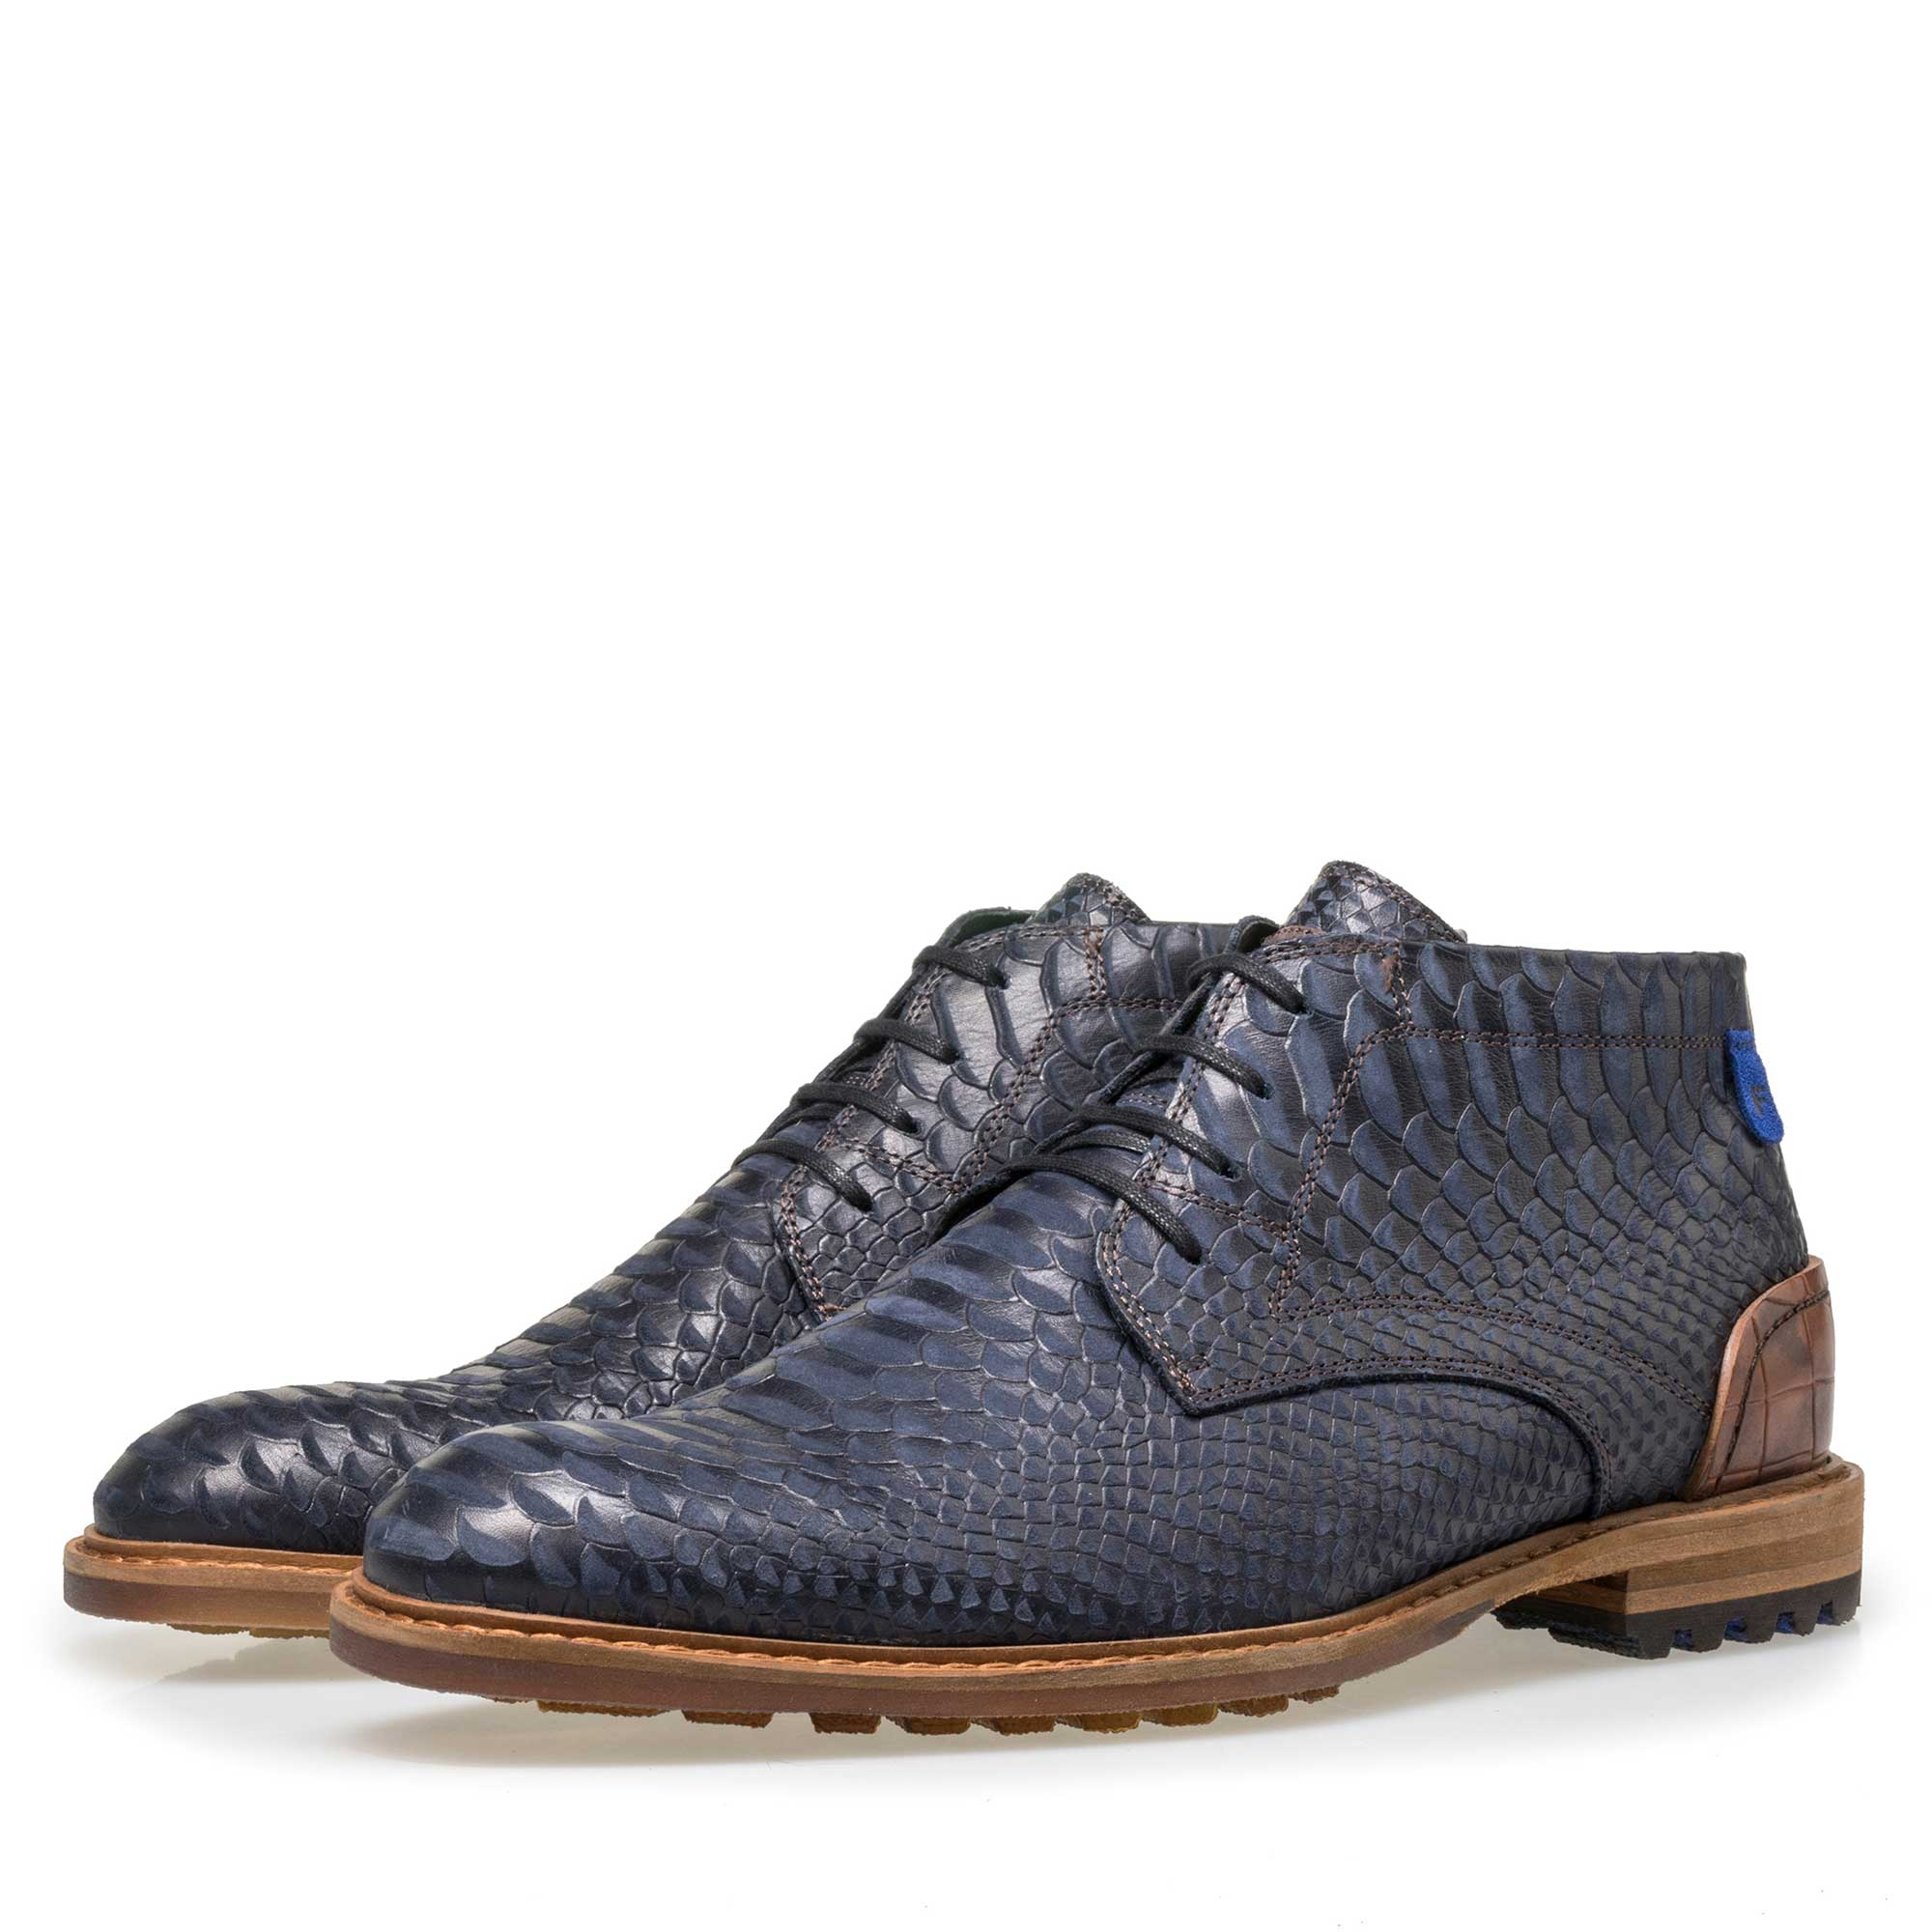 10907/07 - Floris van Bommel men's blue leather lace boot finished with a snake print